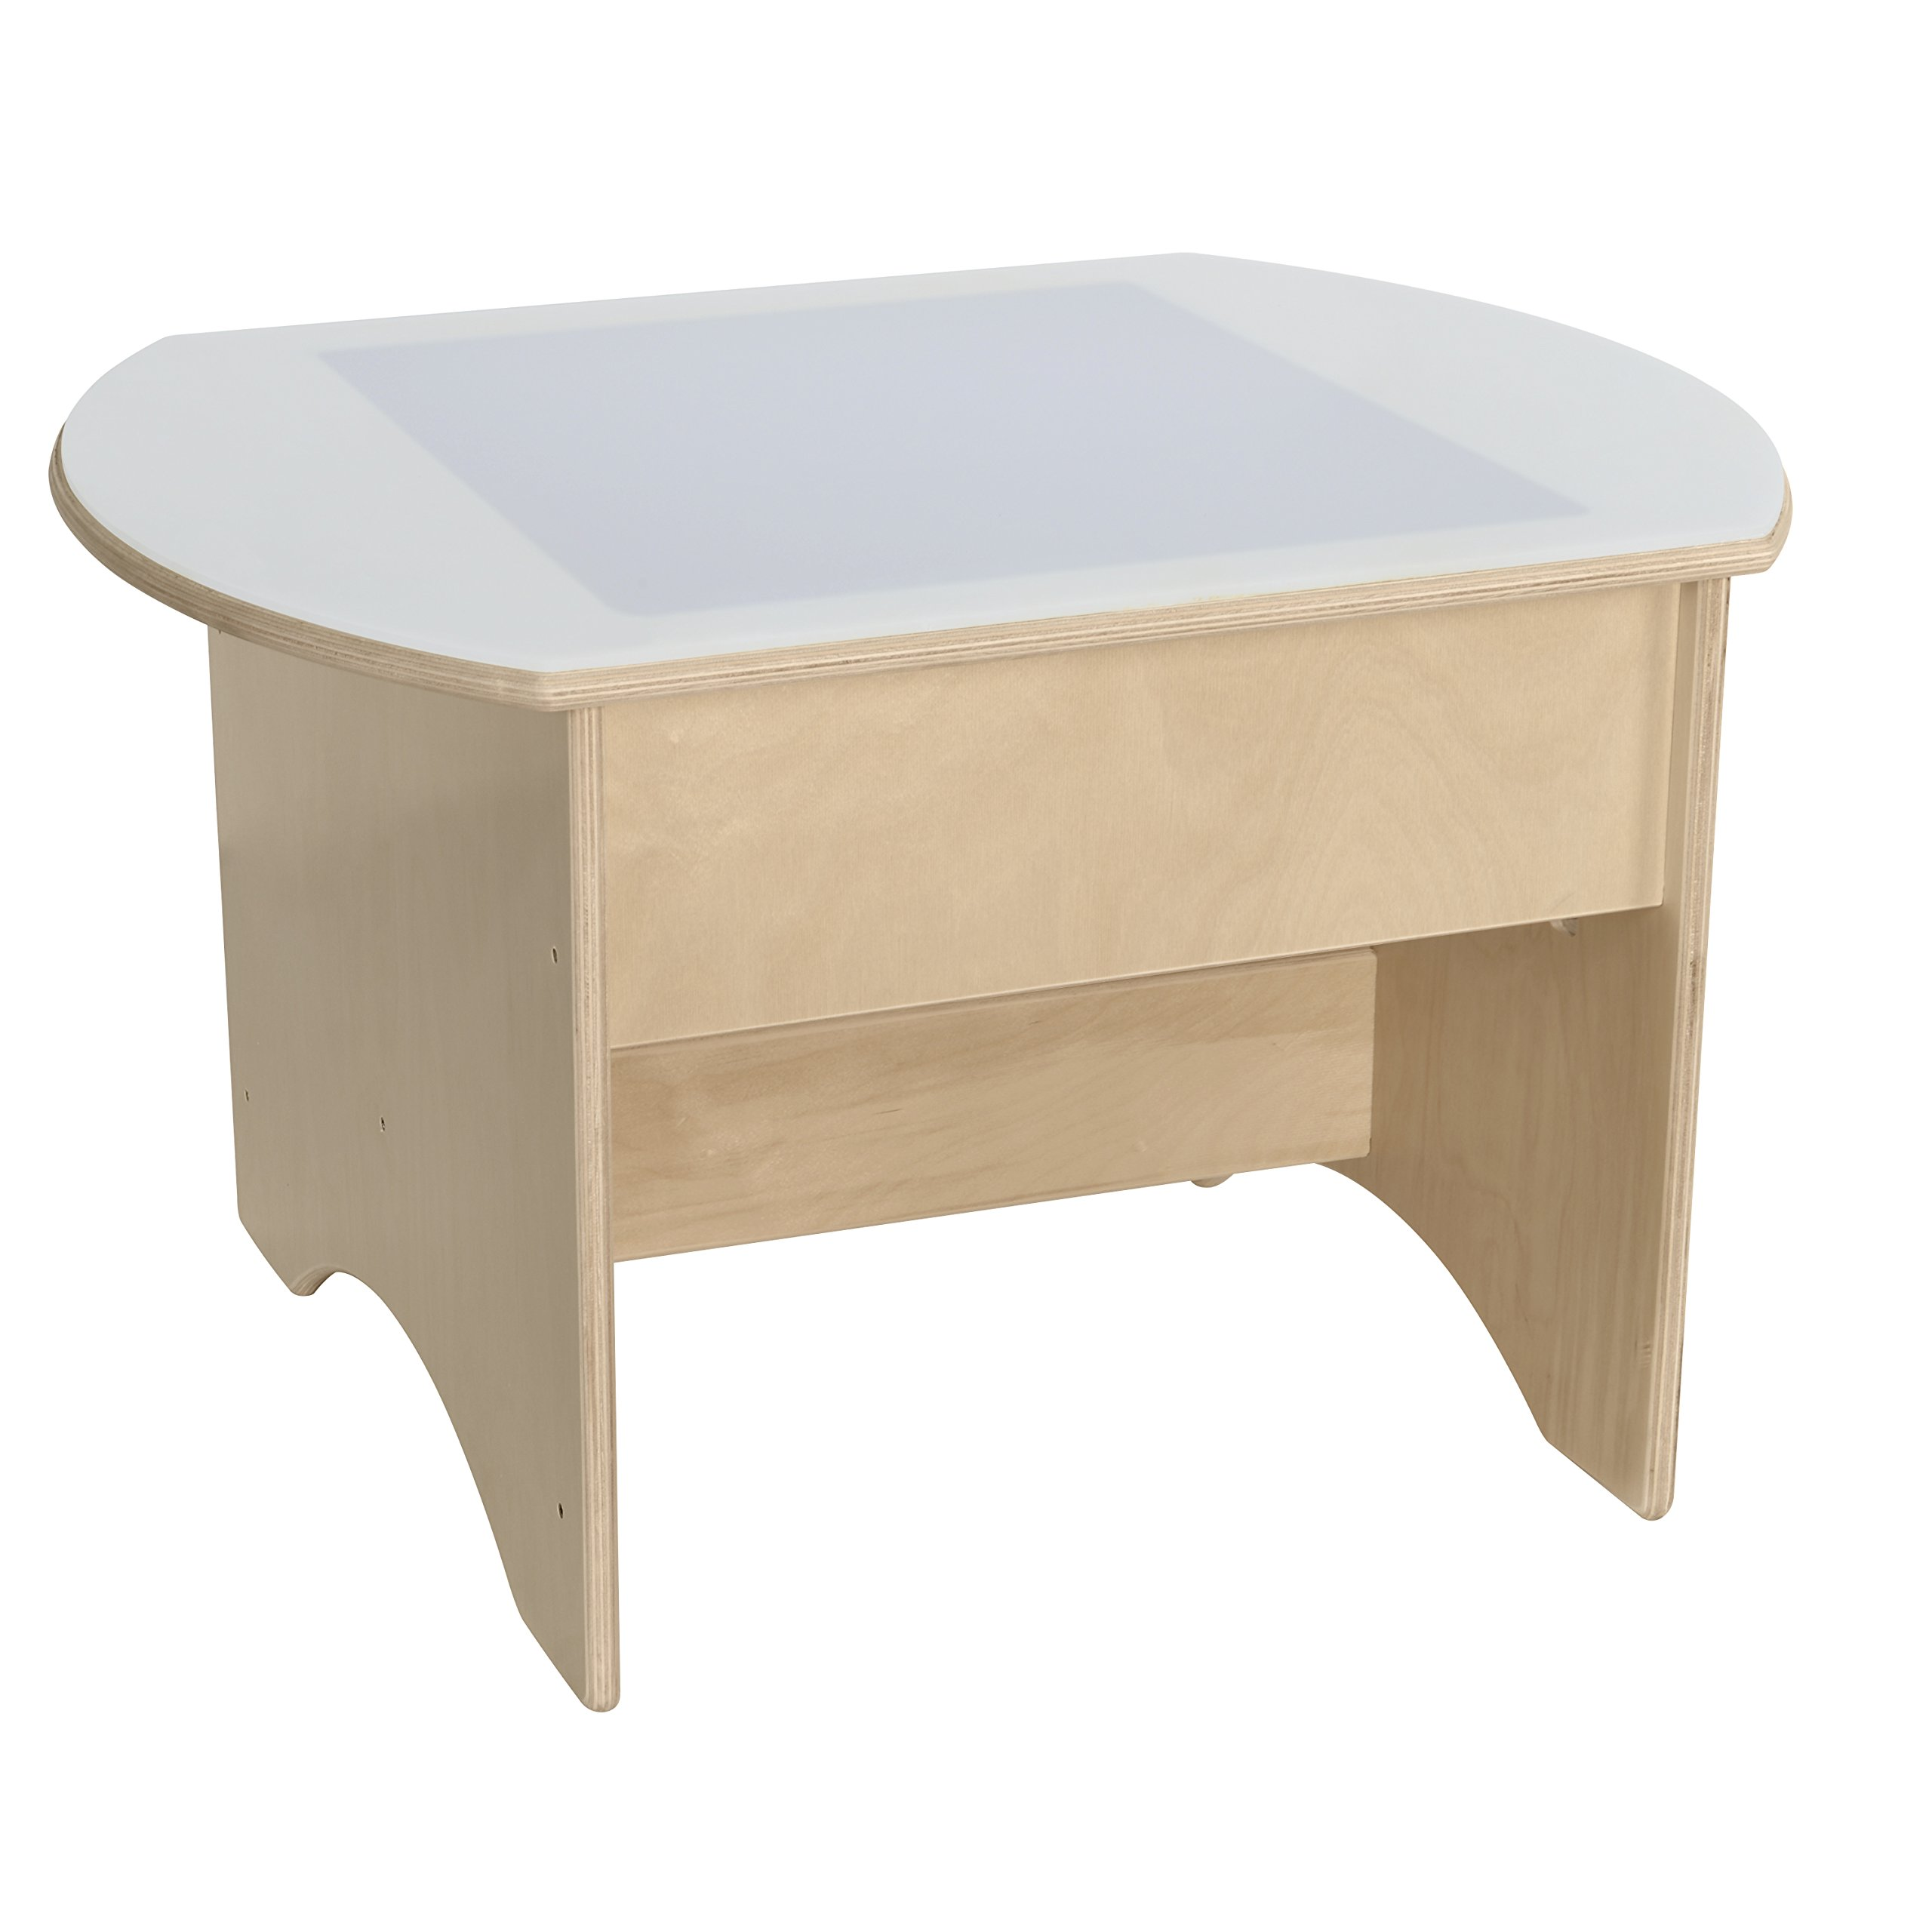 Wood Designs 991312 30'' Brilliant Light Table, Natural by Wood Designs